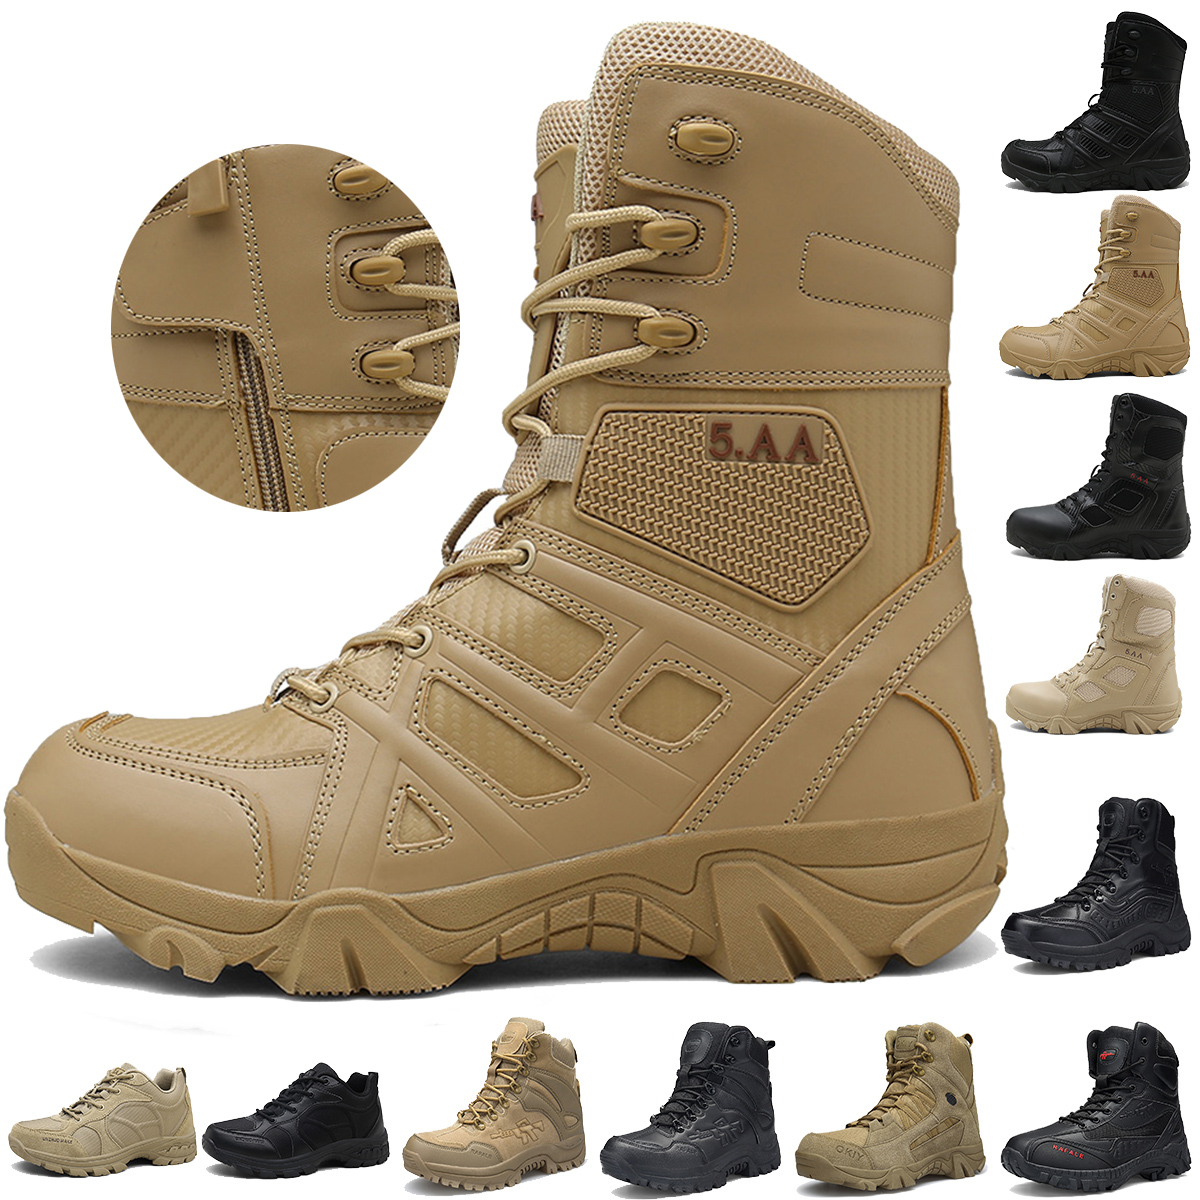 Cungel Work-Shoes Snow-Boots Ankle-Boats Desert-Combat Army Tactical Winter Autumn Special